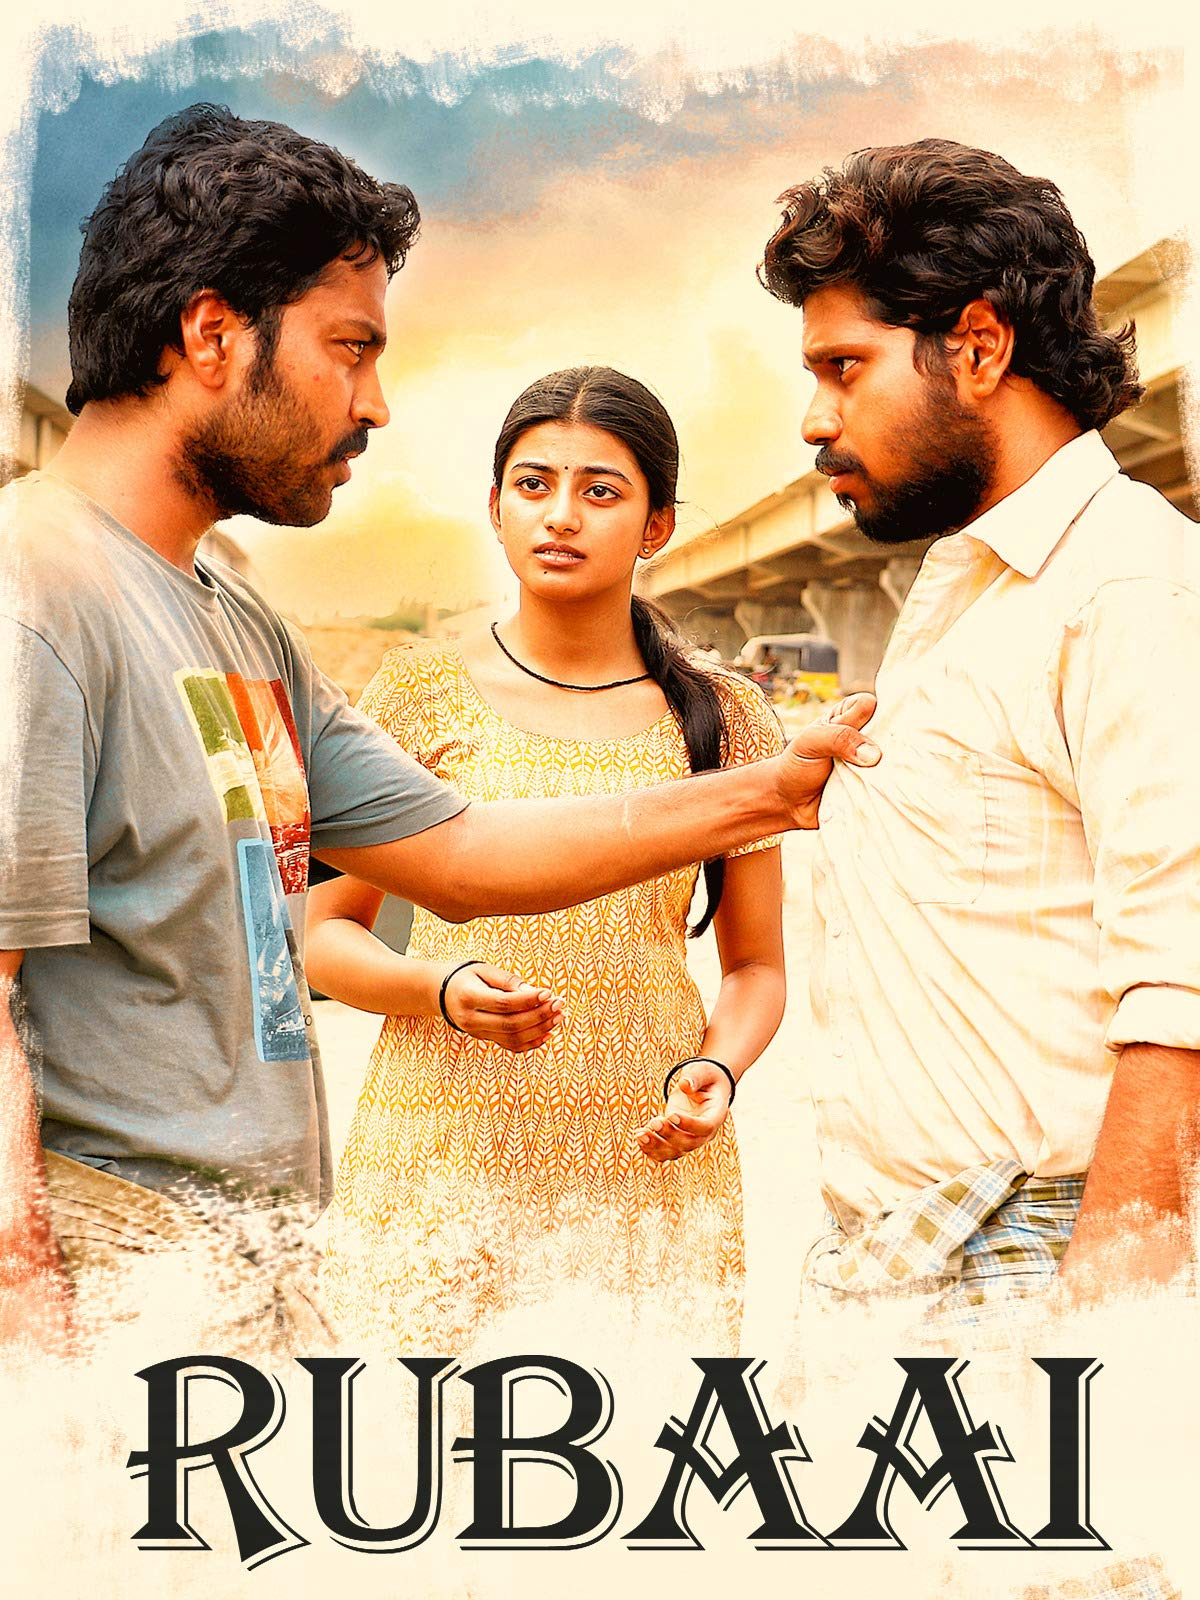 Rubaai on Amazon Prime Video UK